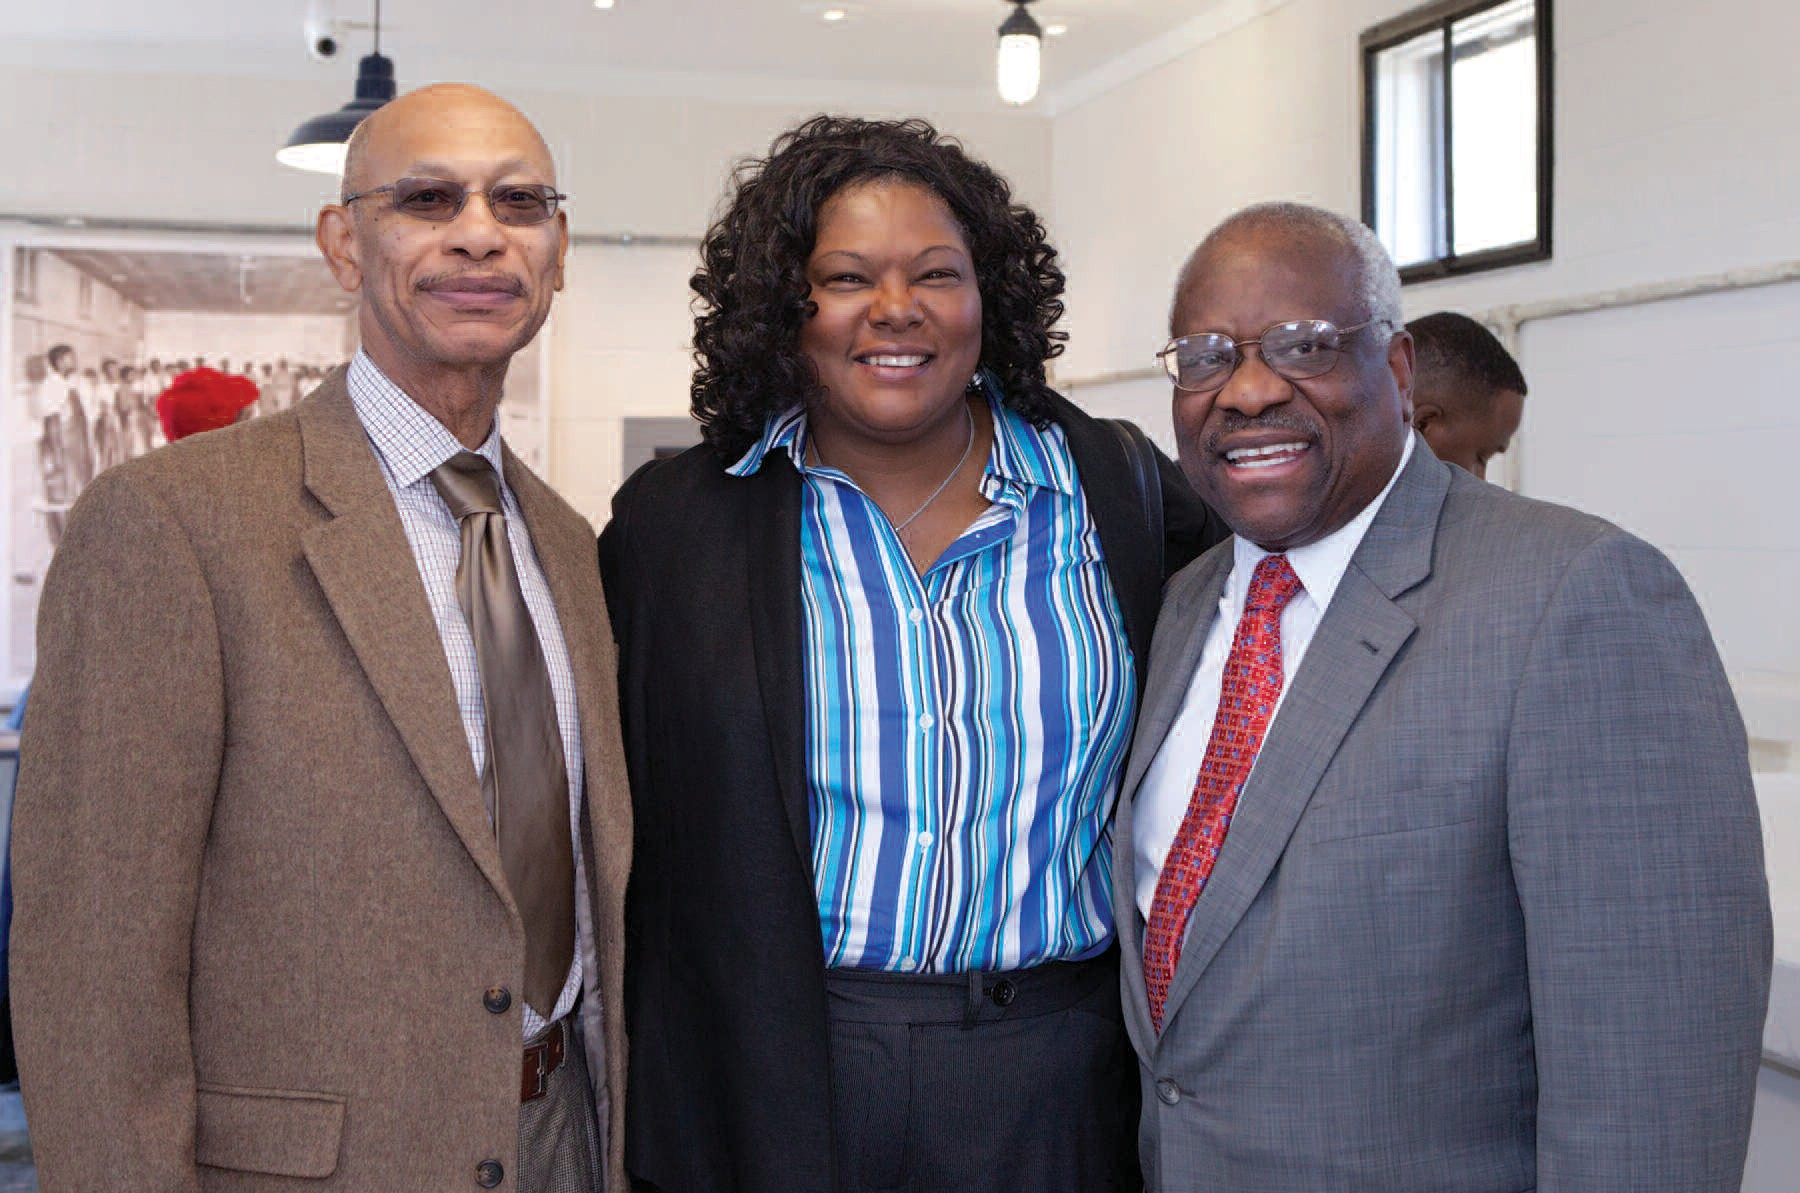 Savannah Mayor Otis Johnson, City Manager Rochelle Small-Toney and U.S. Supreme Court Justice Clarence Thomas (l-r) attended the soft opening of the Pin Point Heritage Museum. Photo credit: Adam Kuehl.